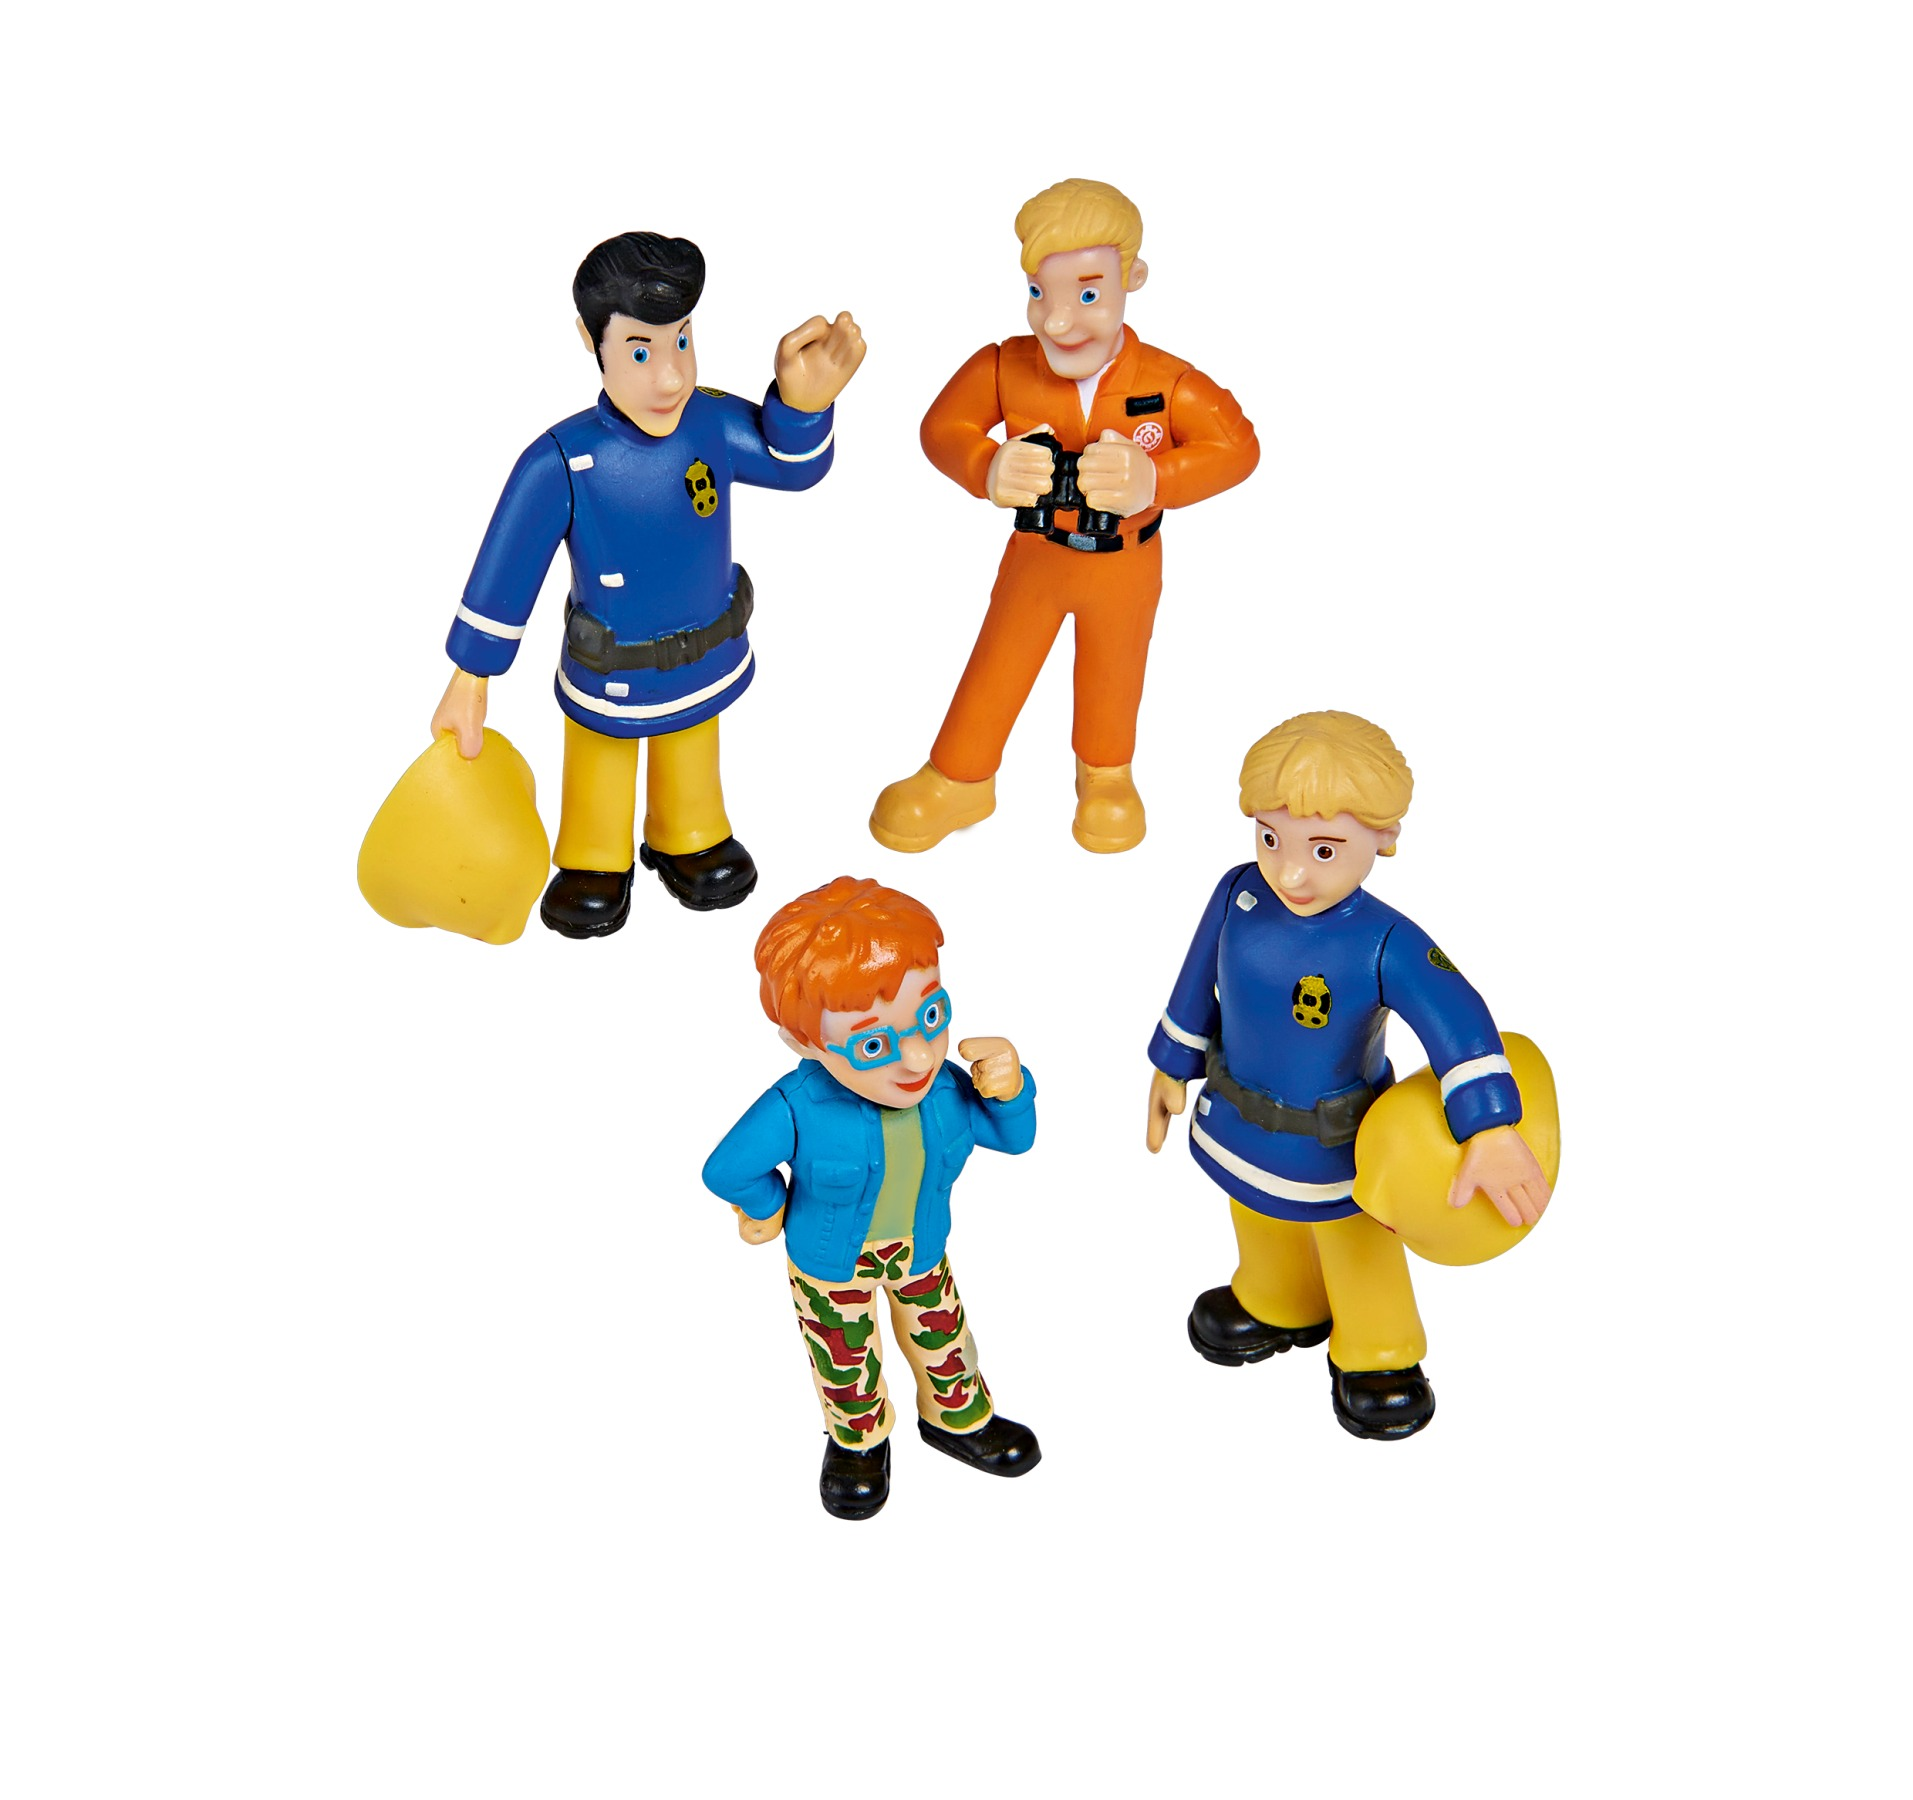 Cute Fireman Clipart Job and Occupation Clip Art   Etsy in 2020   Clip art,  Fireman, Fire fighter birthday party